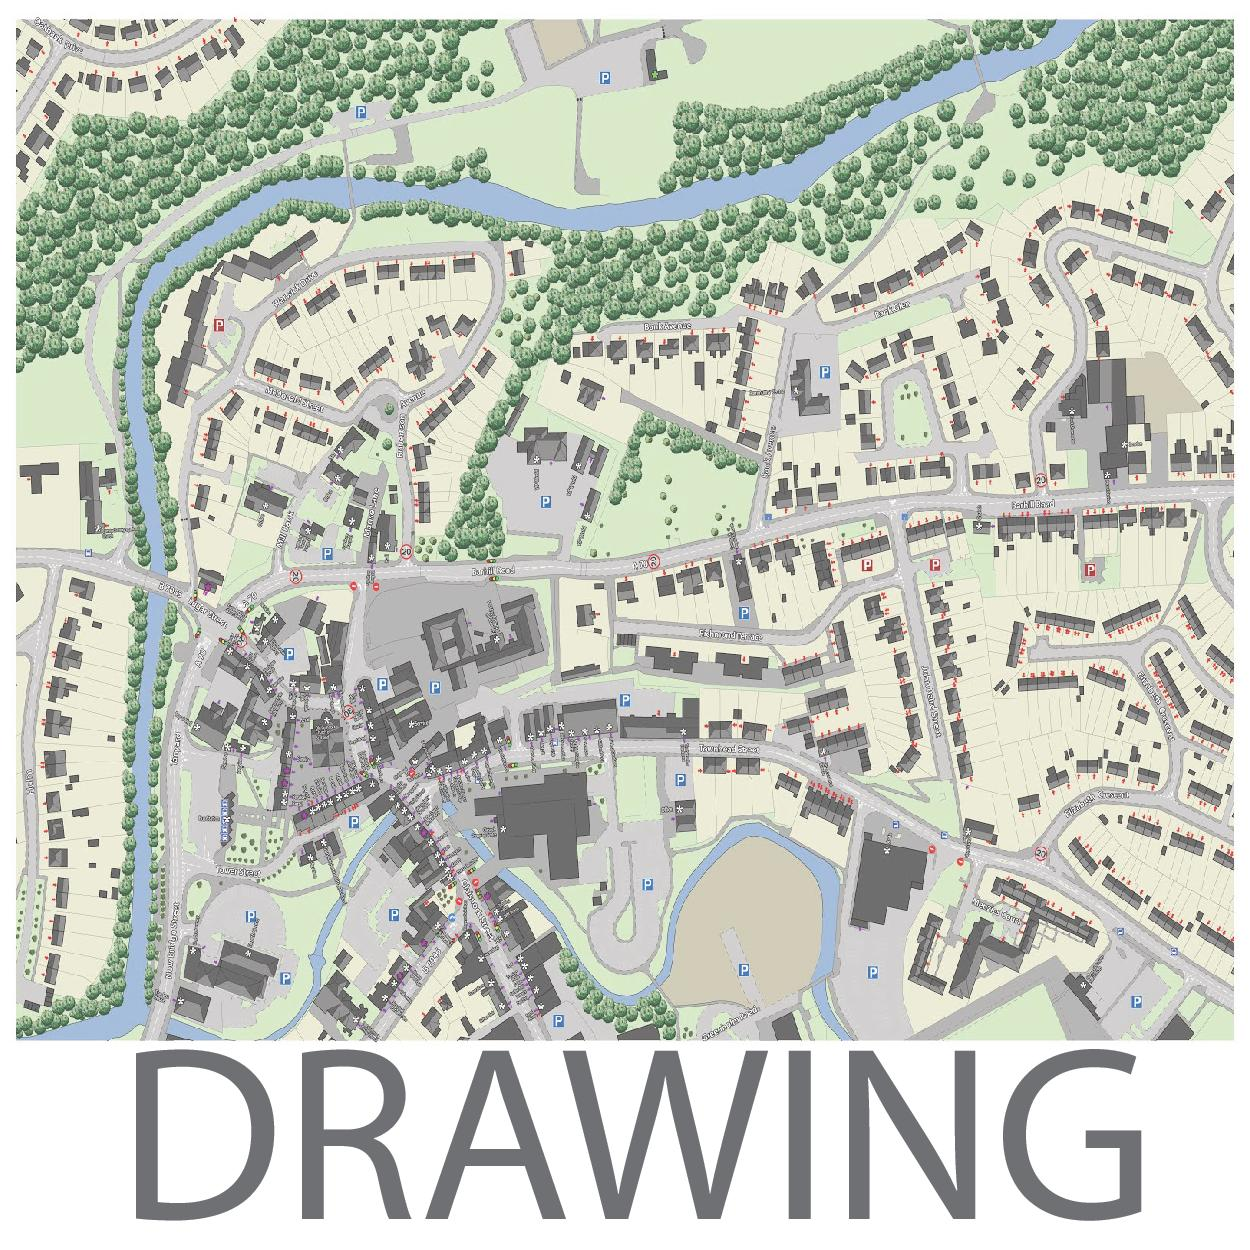 Drawing the Existing City